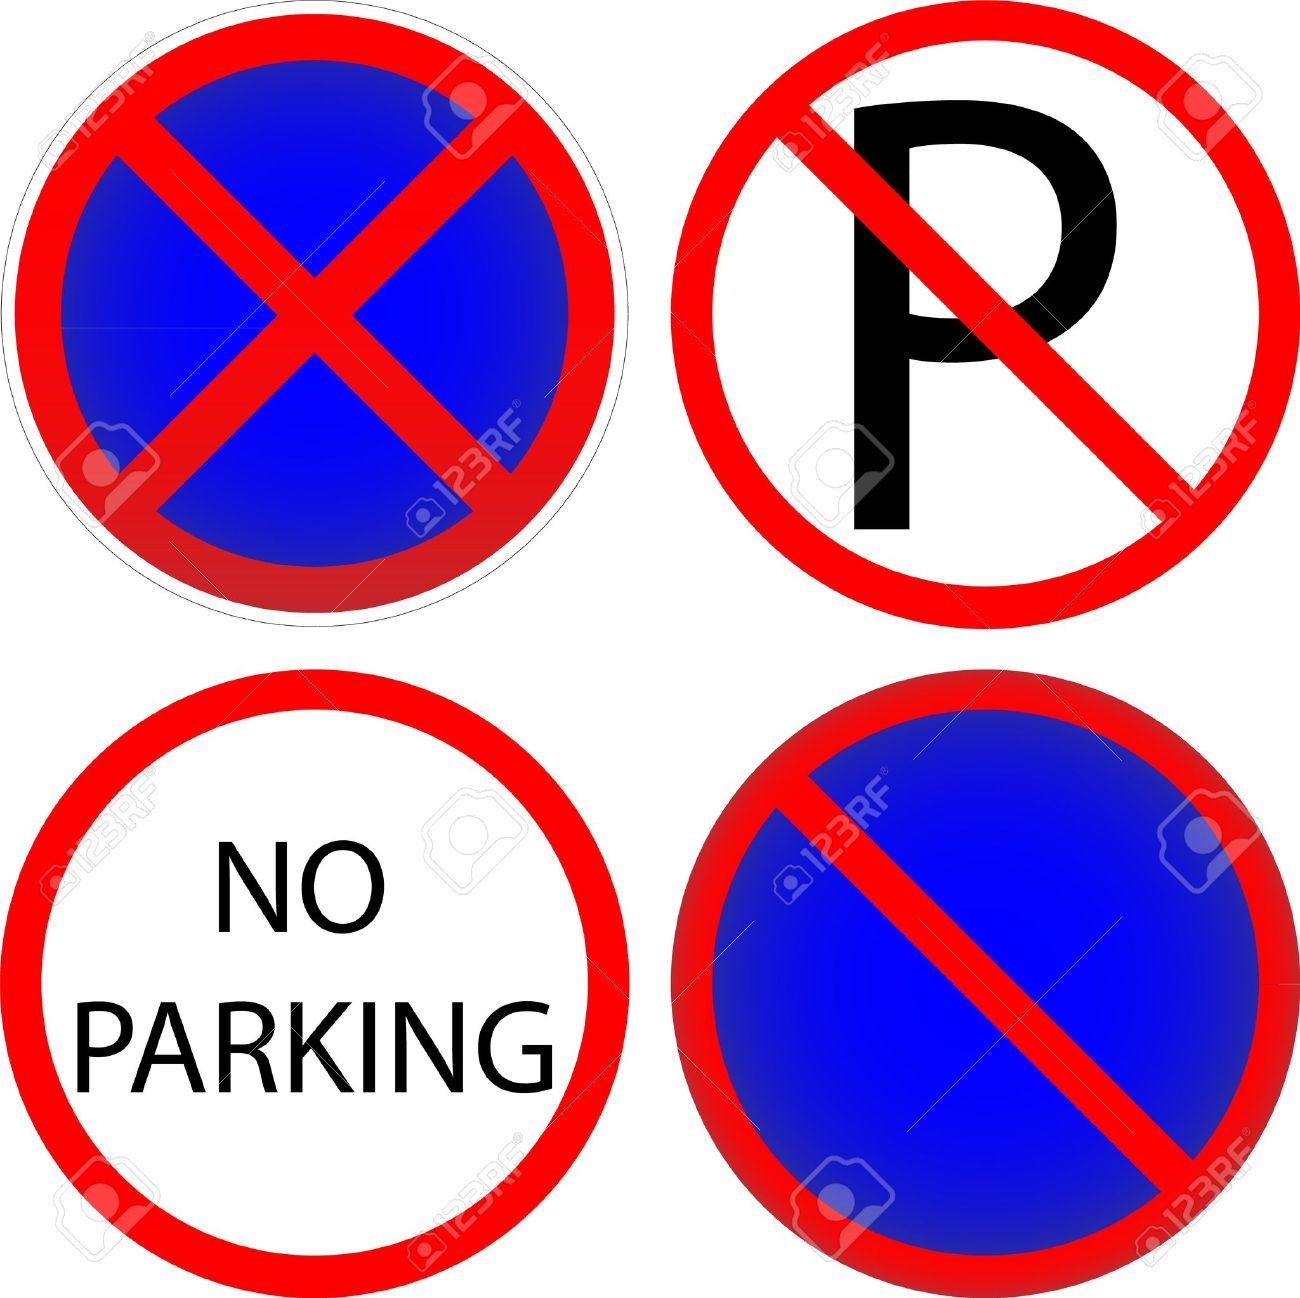 Set of variants a No parking - road sign isolated on white background. Stock Vector - 10380788